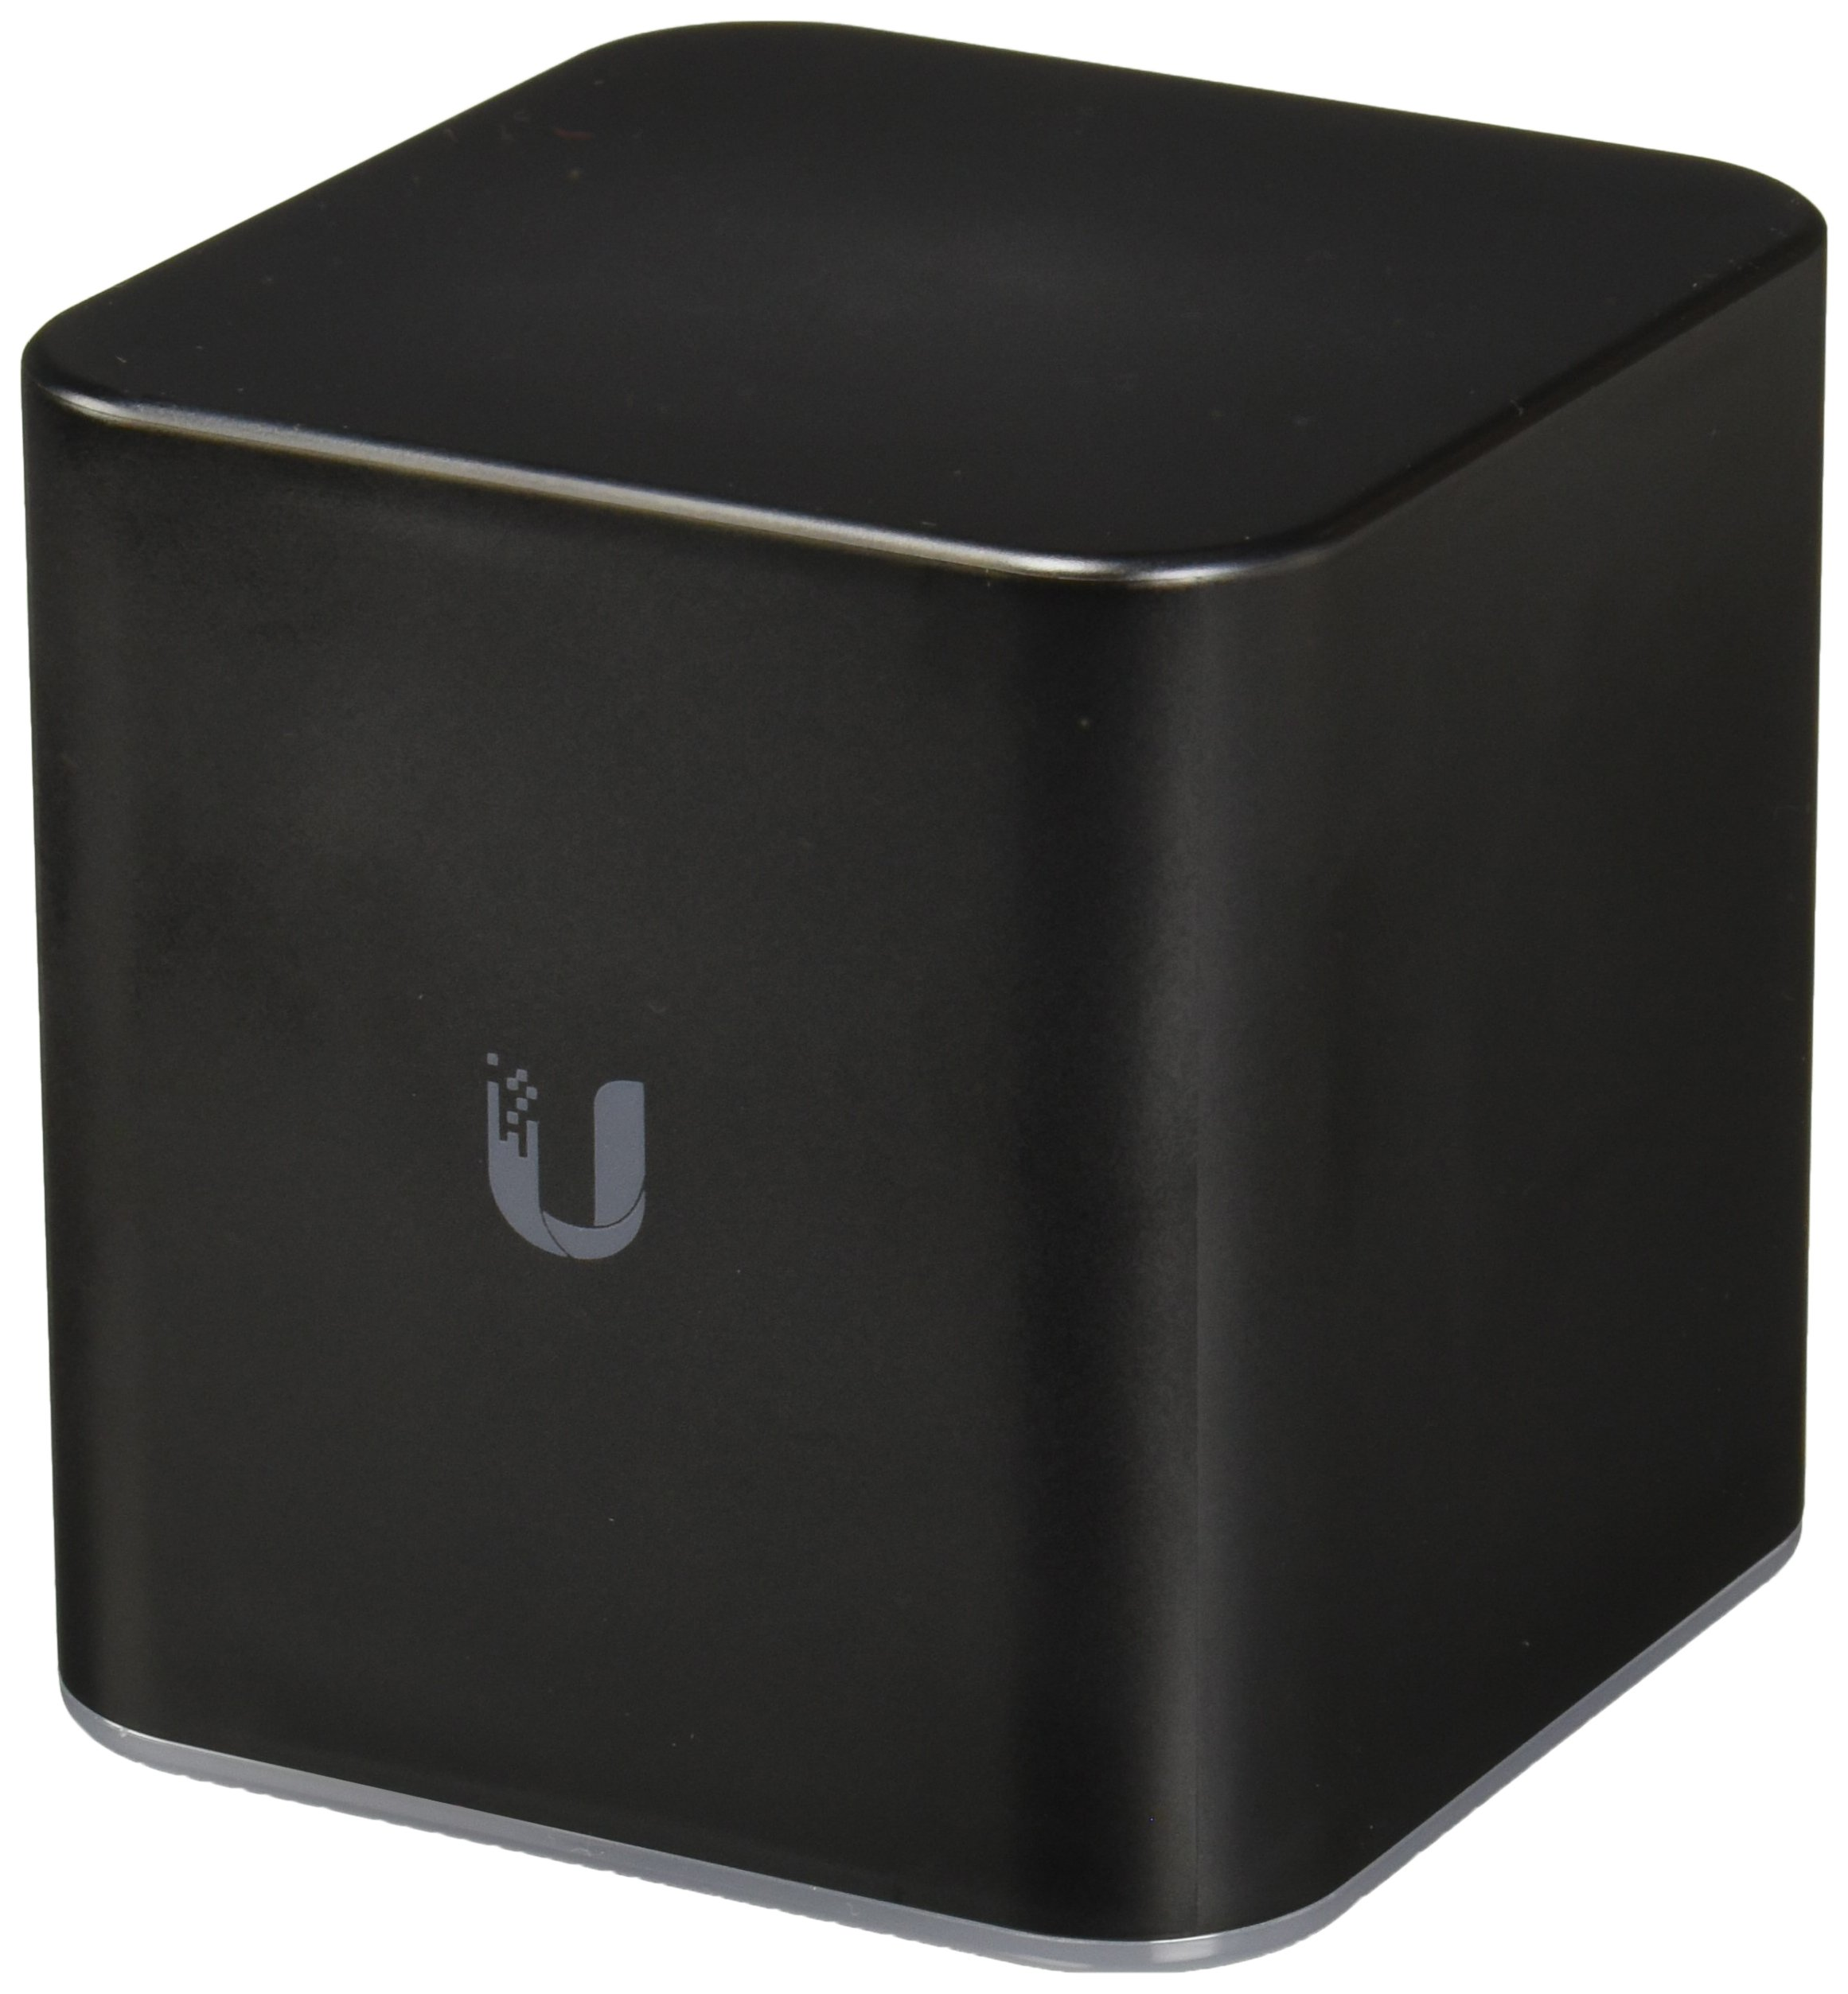 Ubiquiti airCube airCube-AC IEEE 802.11ac 1.14 Gbit/s Wireless Access Point by Ubiquiti Networks (Image #1)